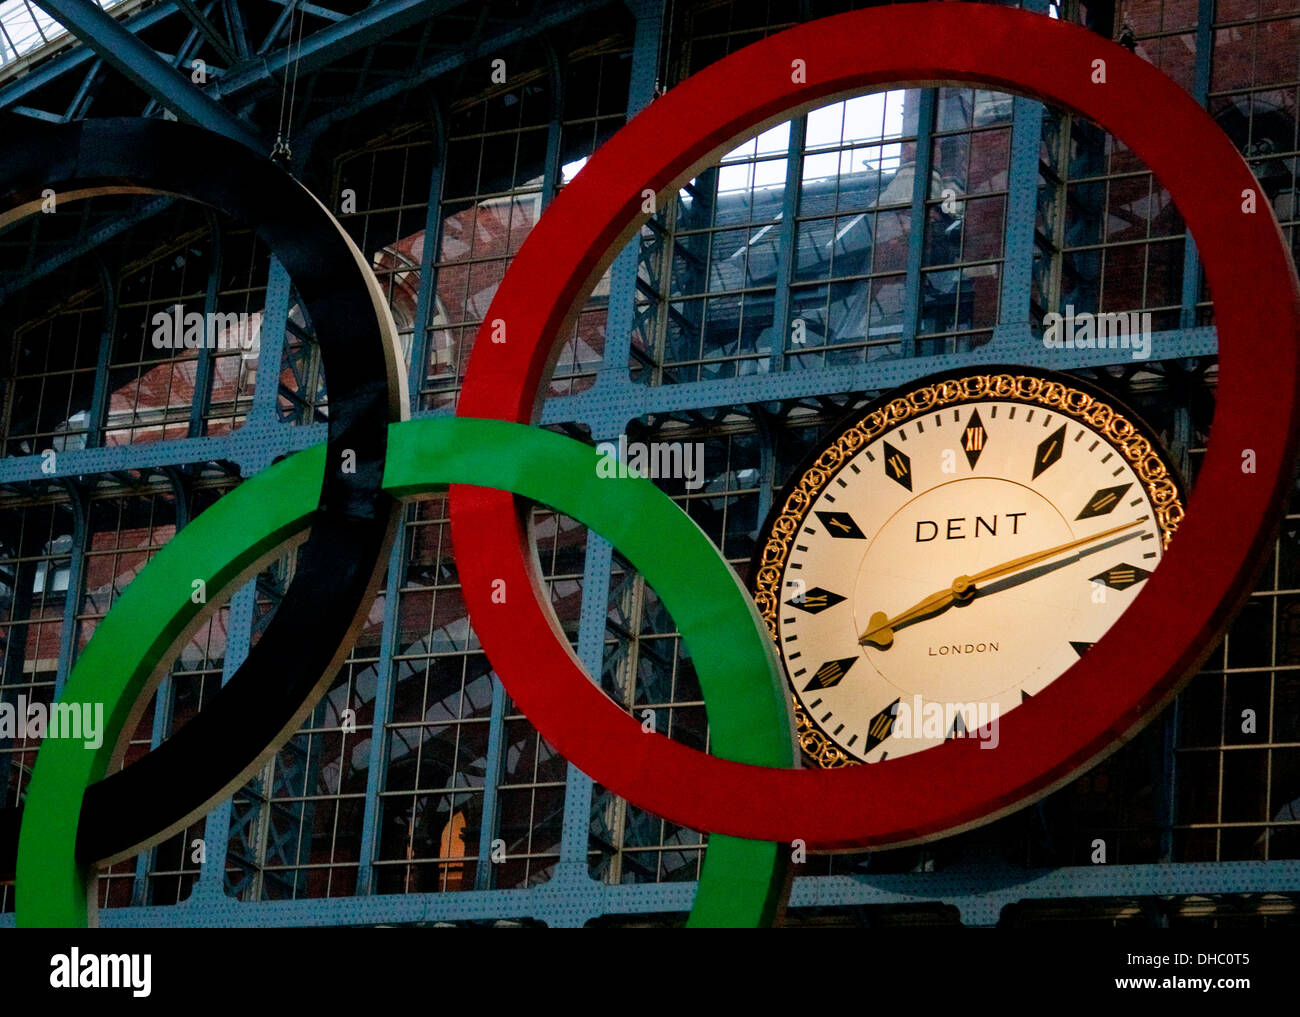 Twenty minutes past eight , 20:12 Olympic rings, Dent clock at St Pancras train station - Stock Image